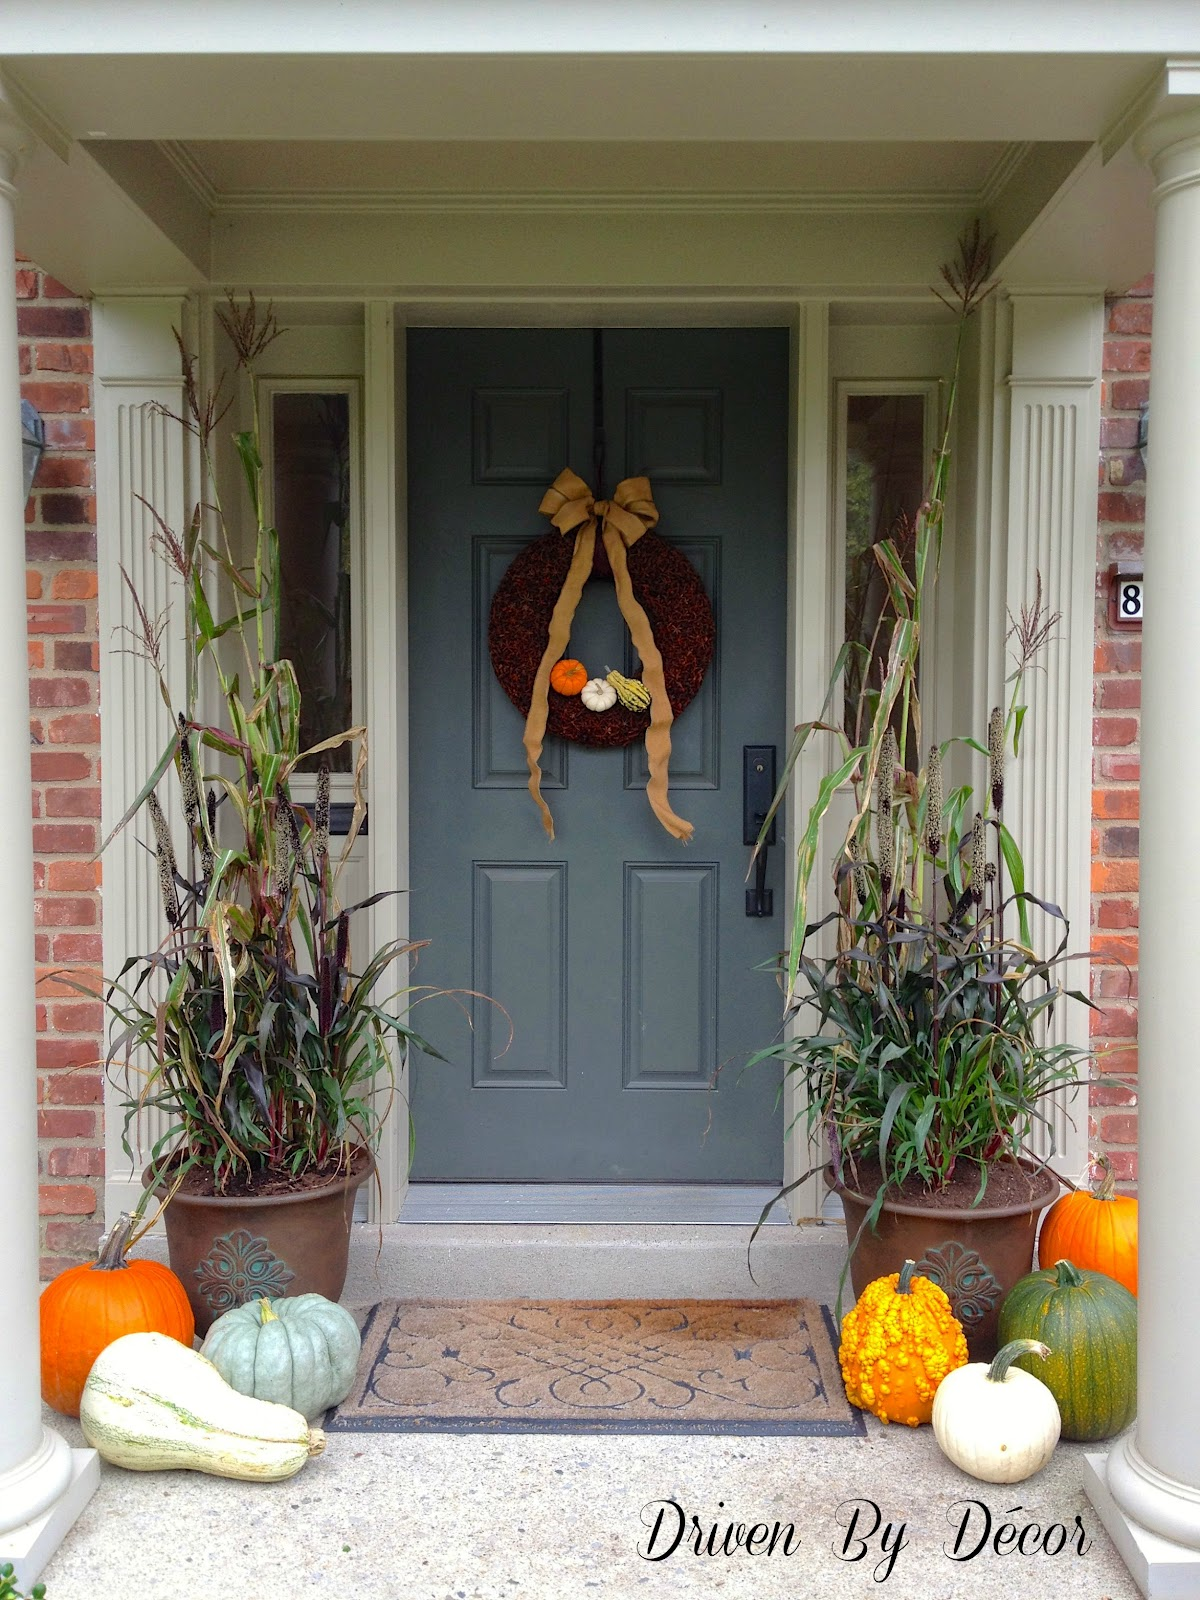 Decorating my front porch for fall driven by decor Small front porch decorating ideas for fall